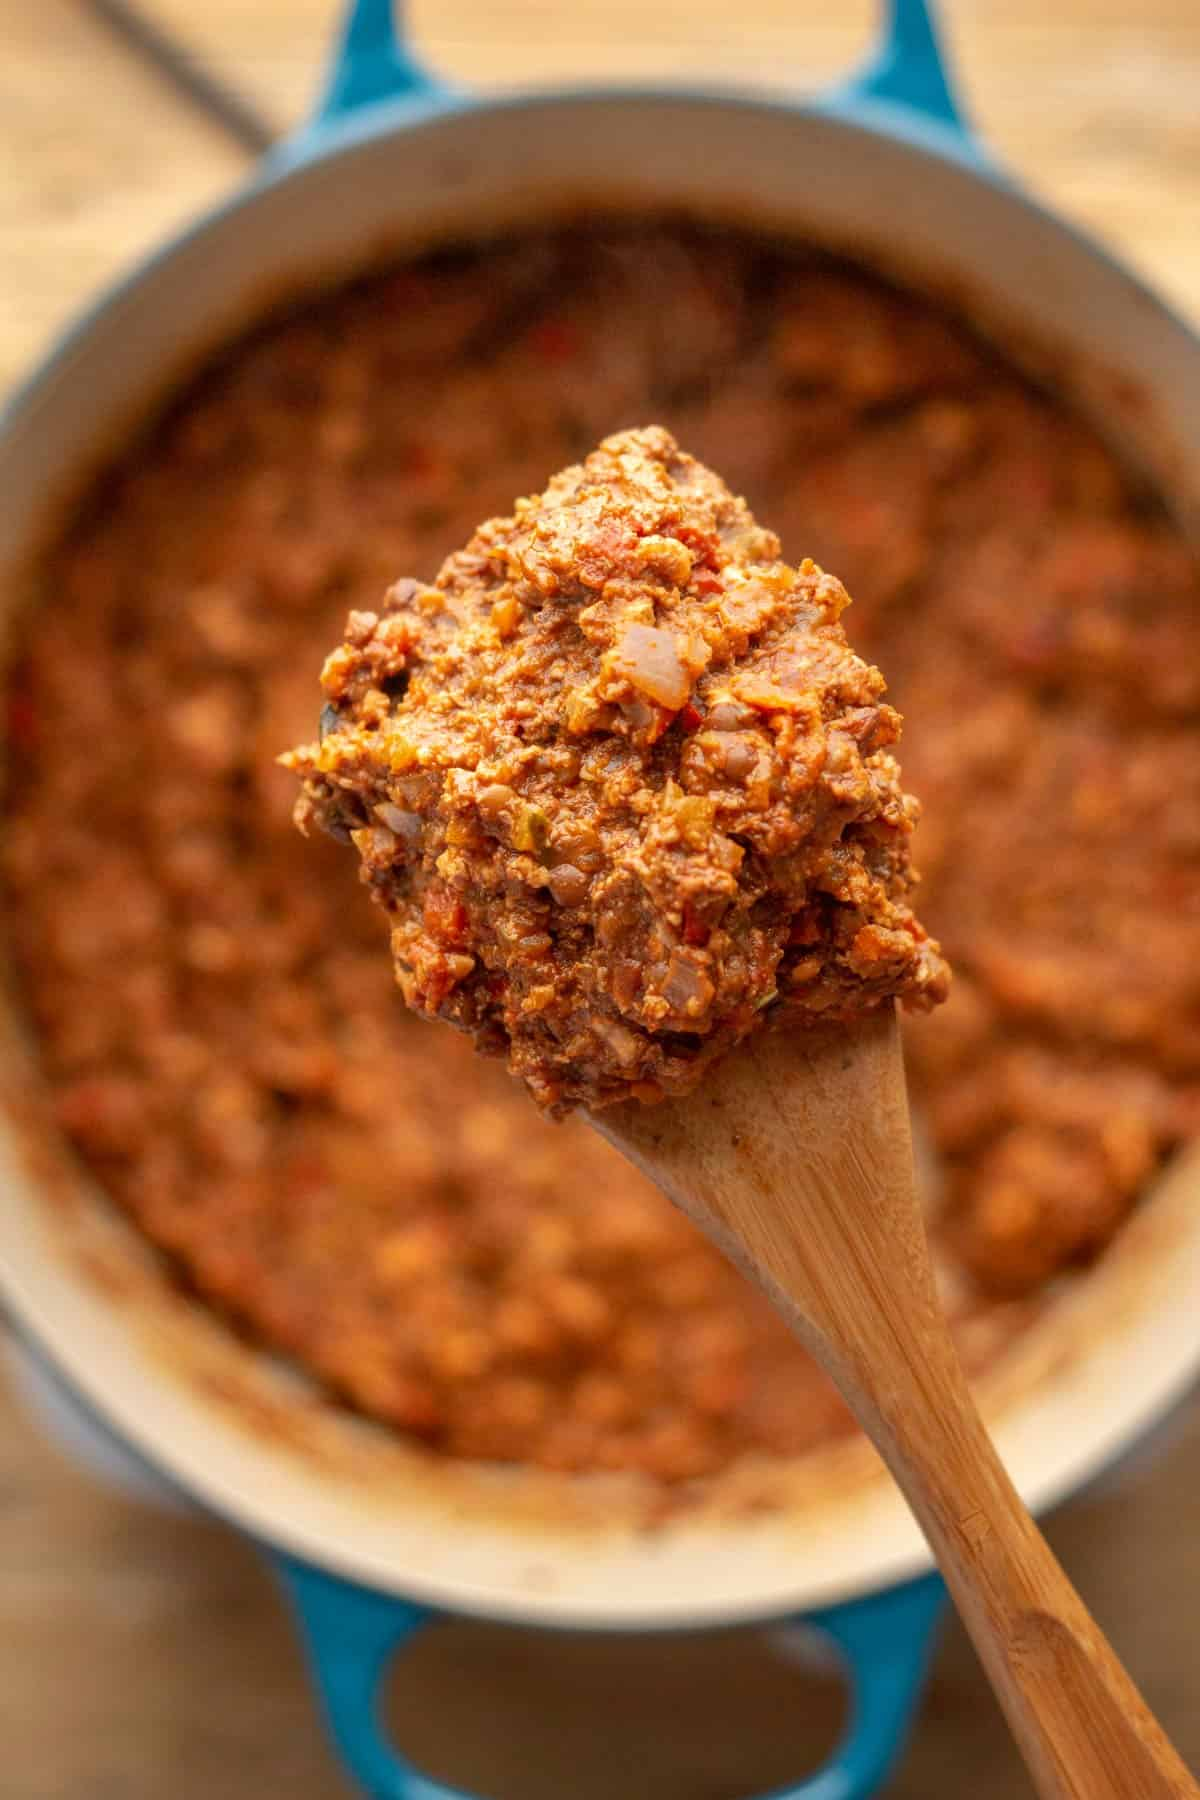 Vegan mince in a pot with a wooden spoon.